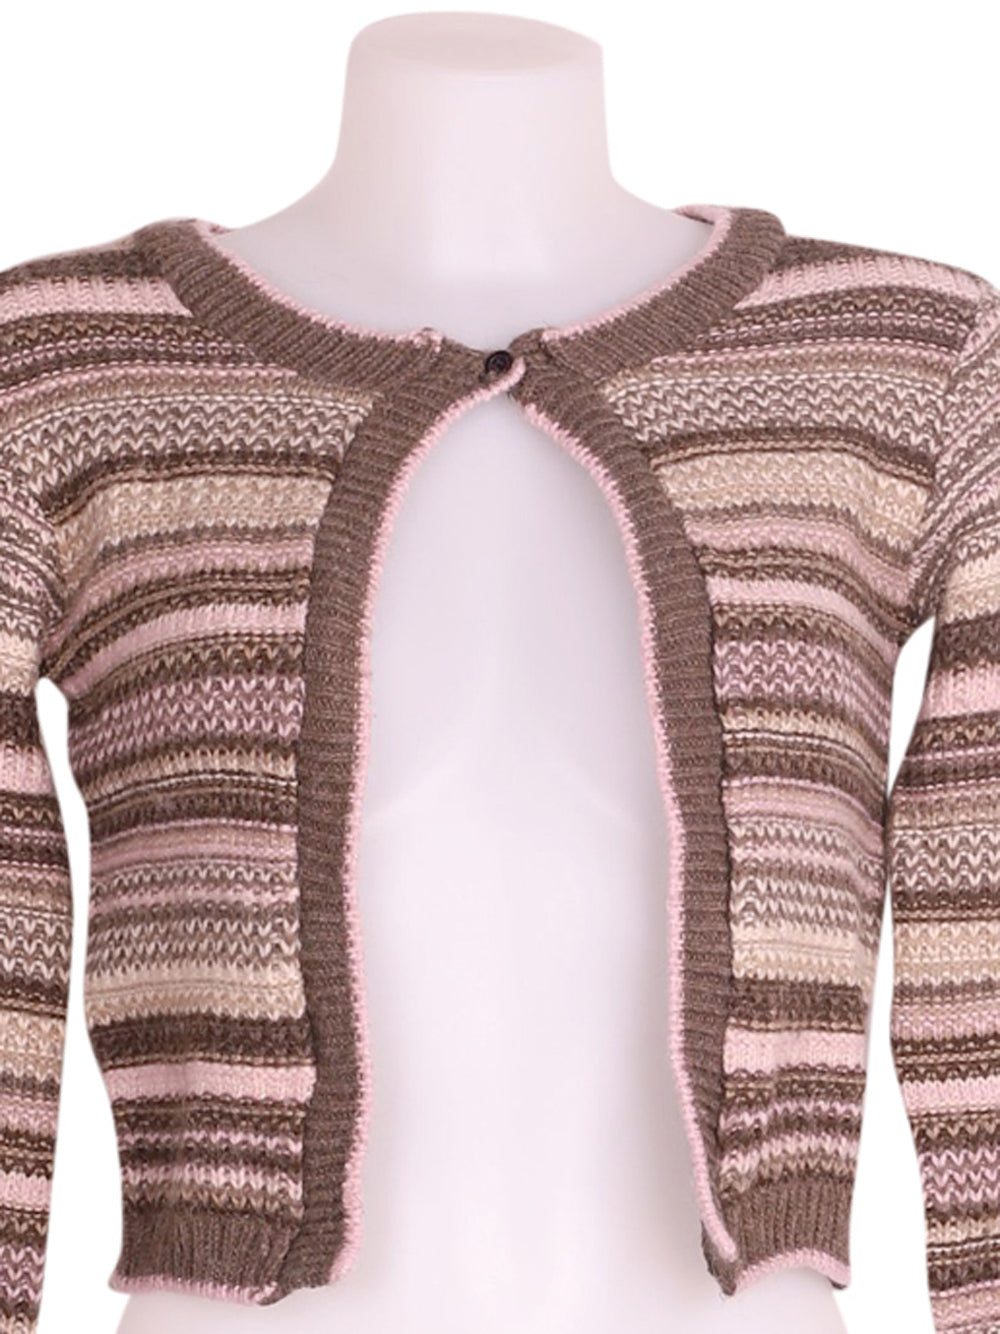 Detail photo of Preloved Motivi Brown Woman's bolero - size 8/S